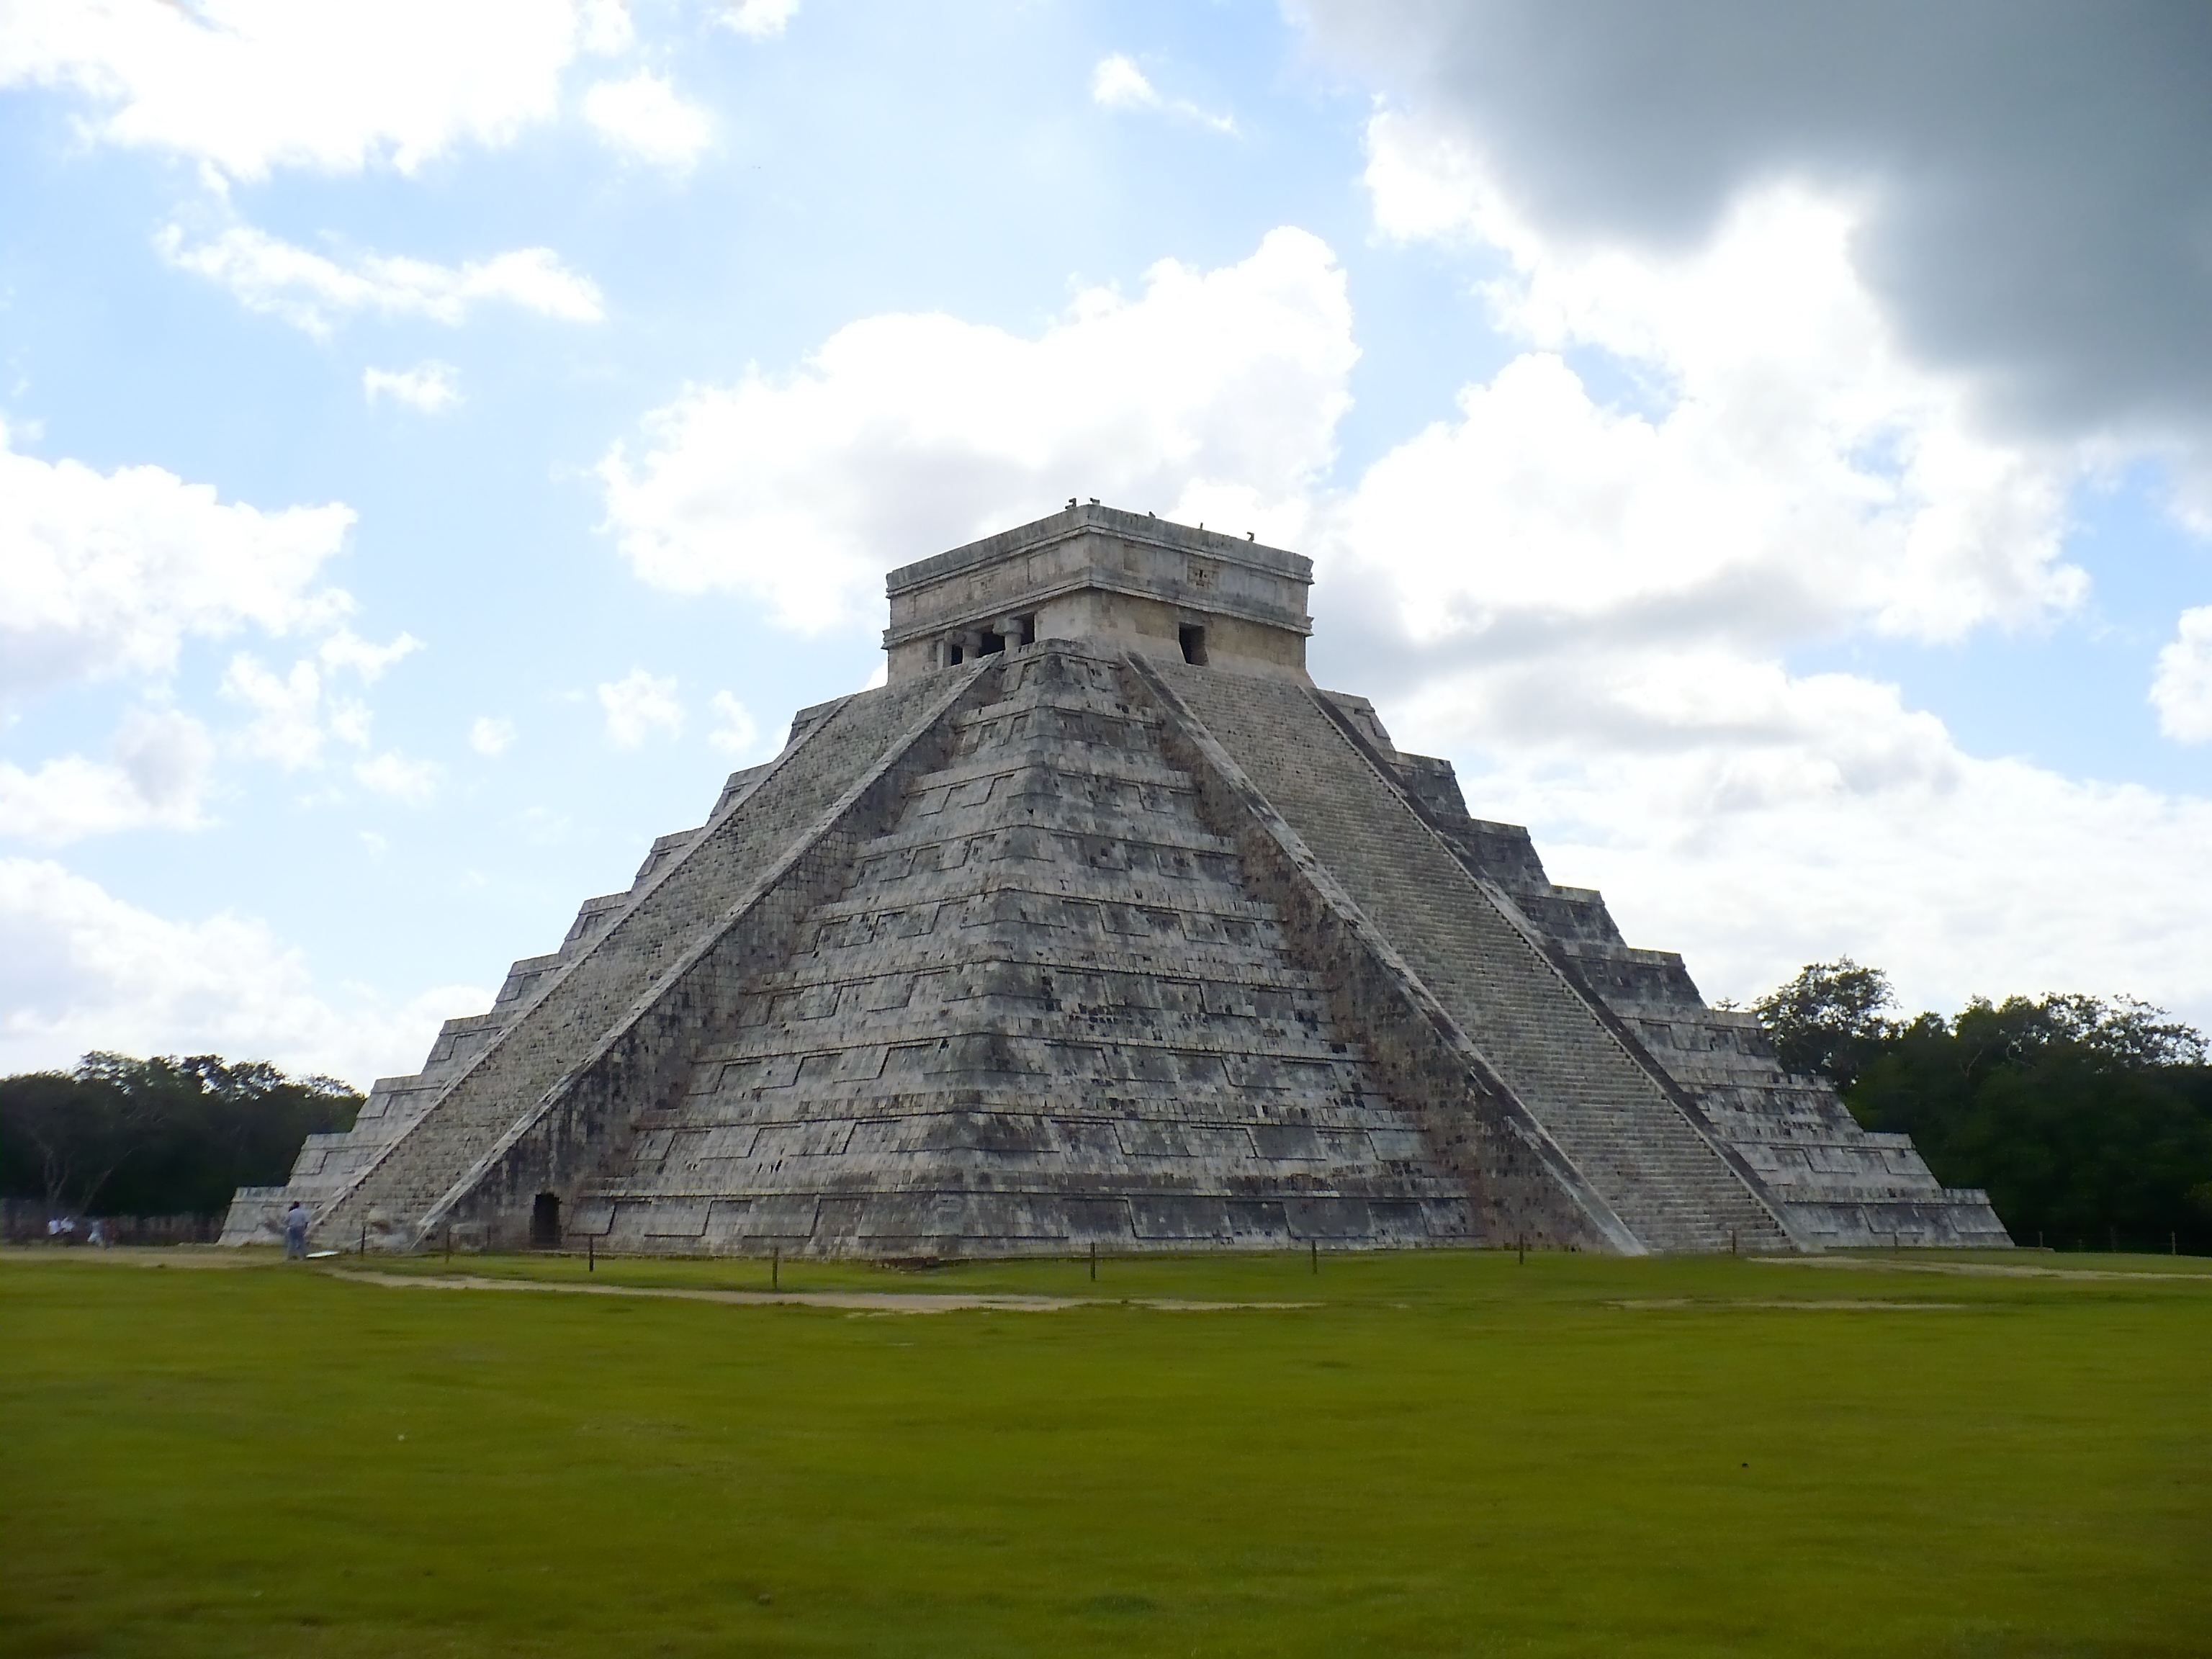 the mayan Get information about mayans from the dk find out website for kids improve your knowledge on who the mayans were and learn more with dk find out.